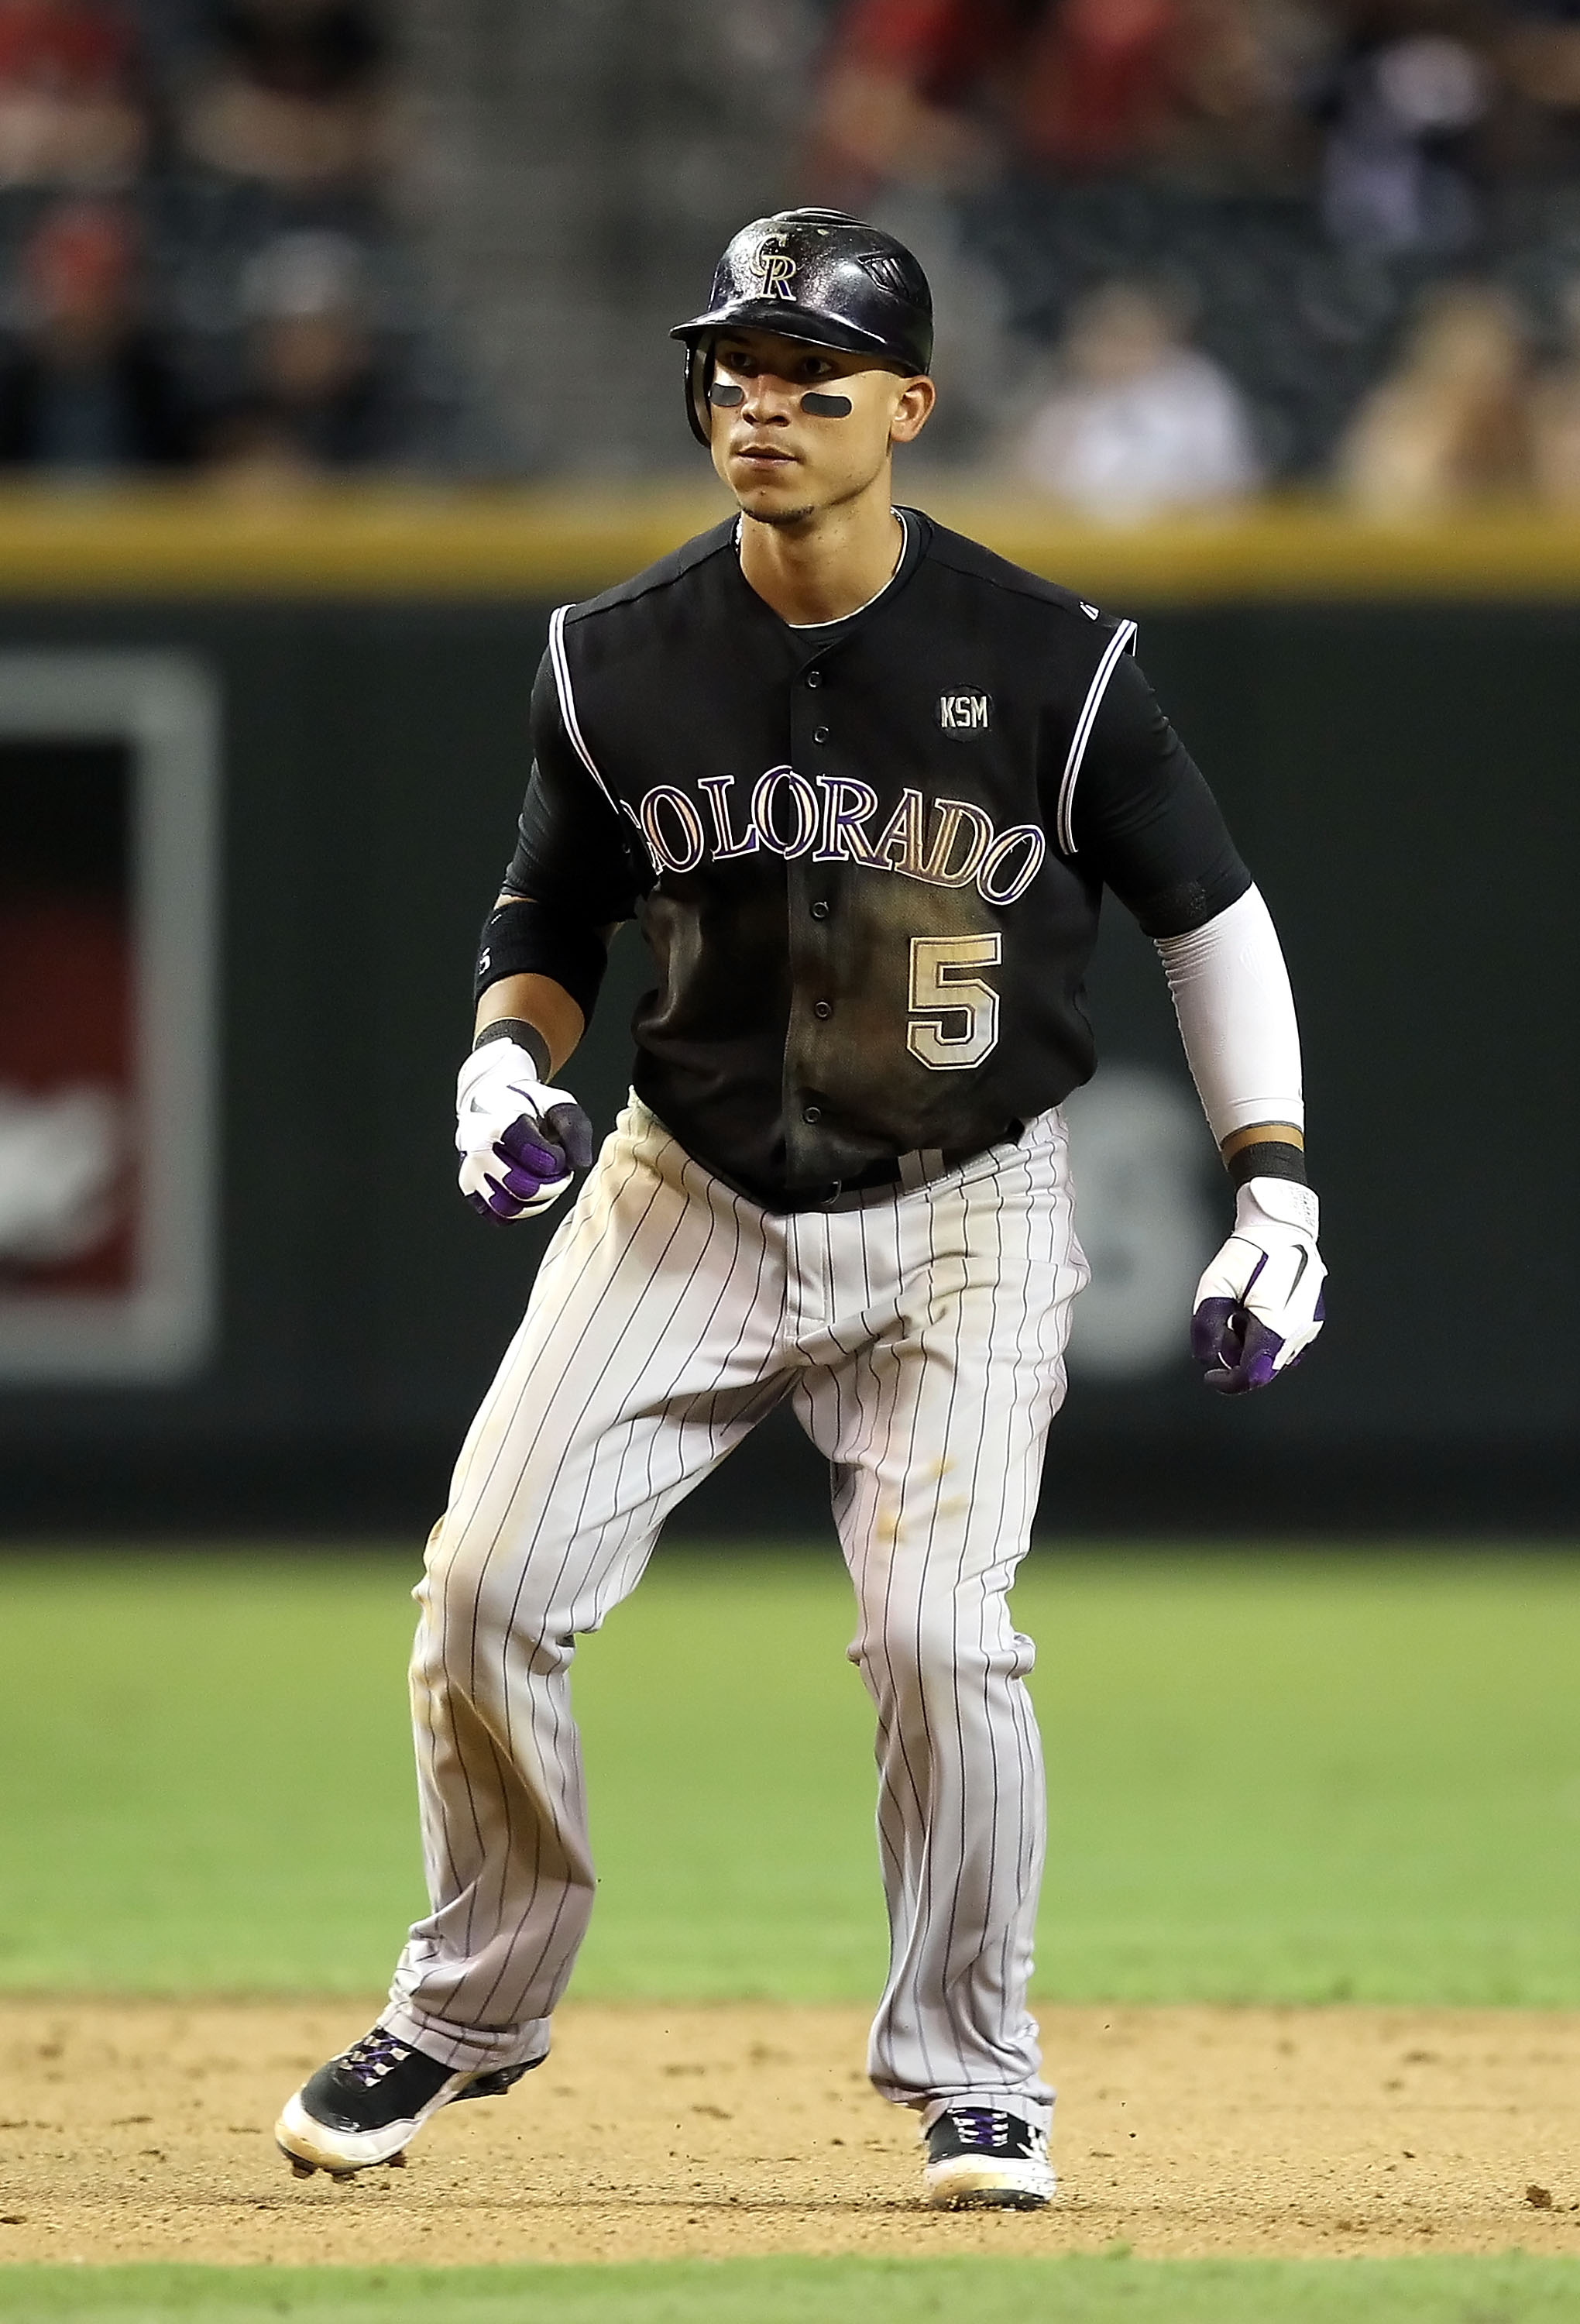 PHOENIX - SEPTEMBER 22:  Carlos Gonzalez #5 of the Colorado Rockies leads off second base during the Major League Baseball game against the Arizona Diamondbacks at Chase Field on September 22, 2010 in Phoenix, Arizona.  (Photo by Christian Petersen/Getty